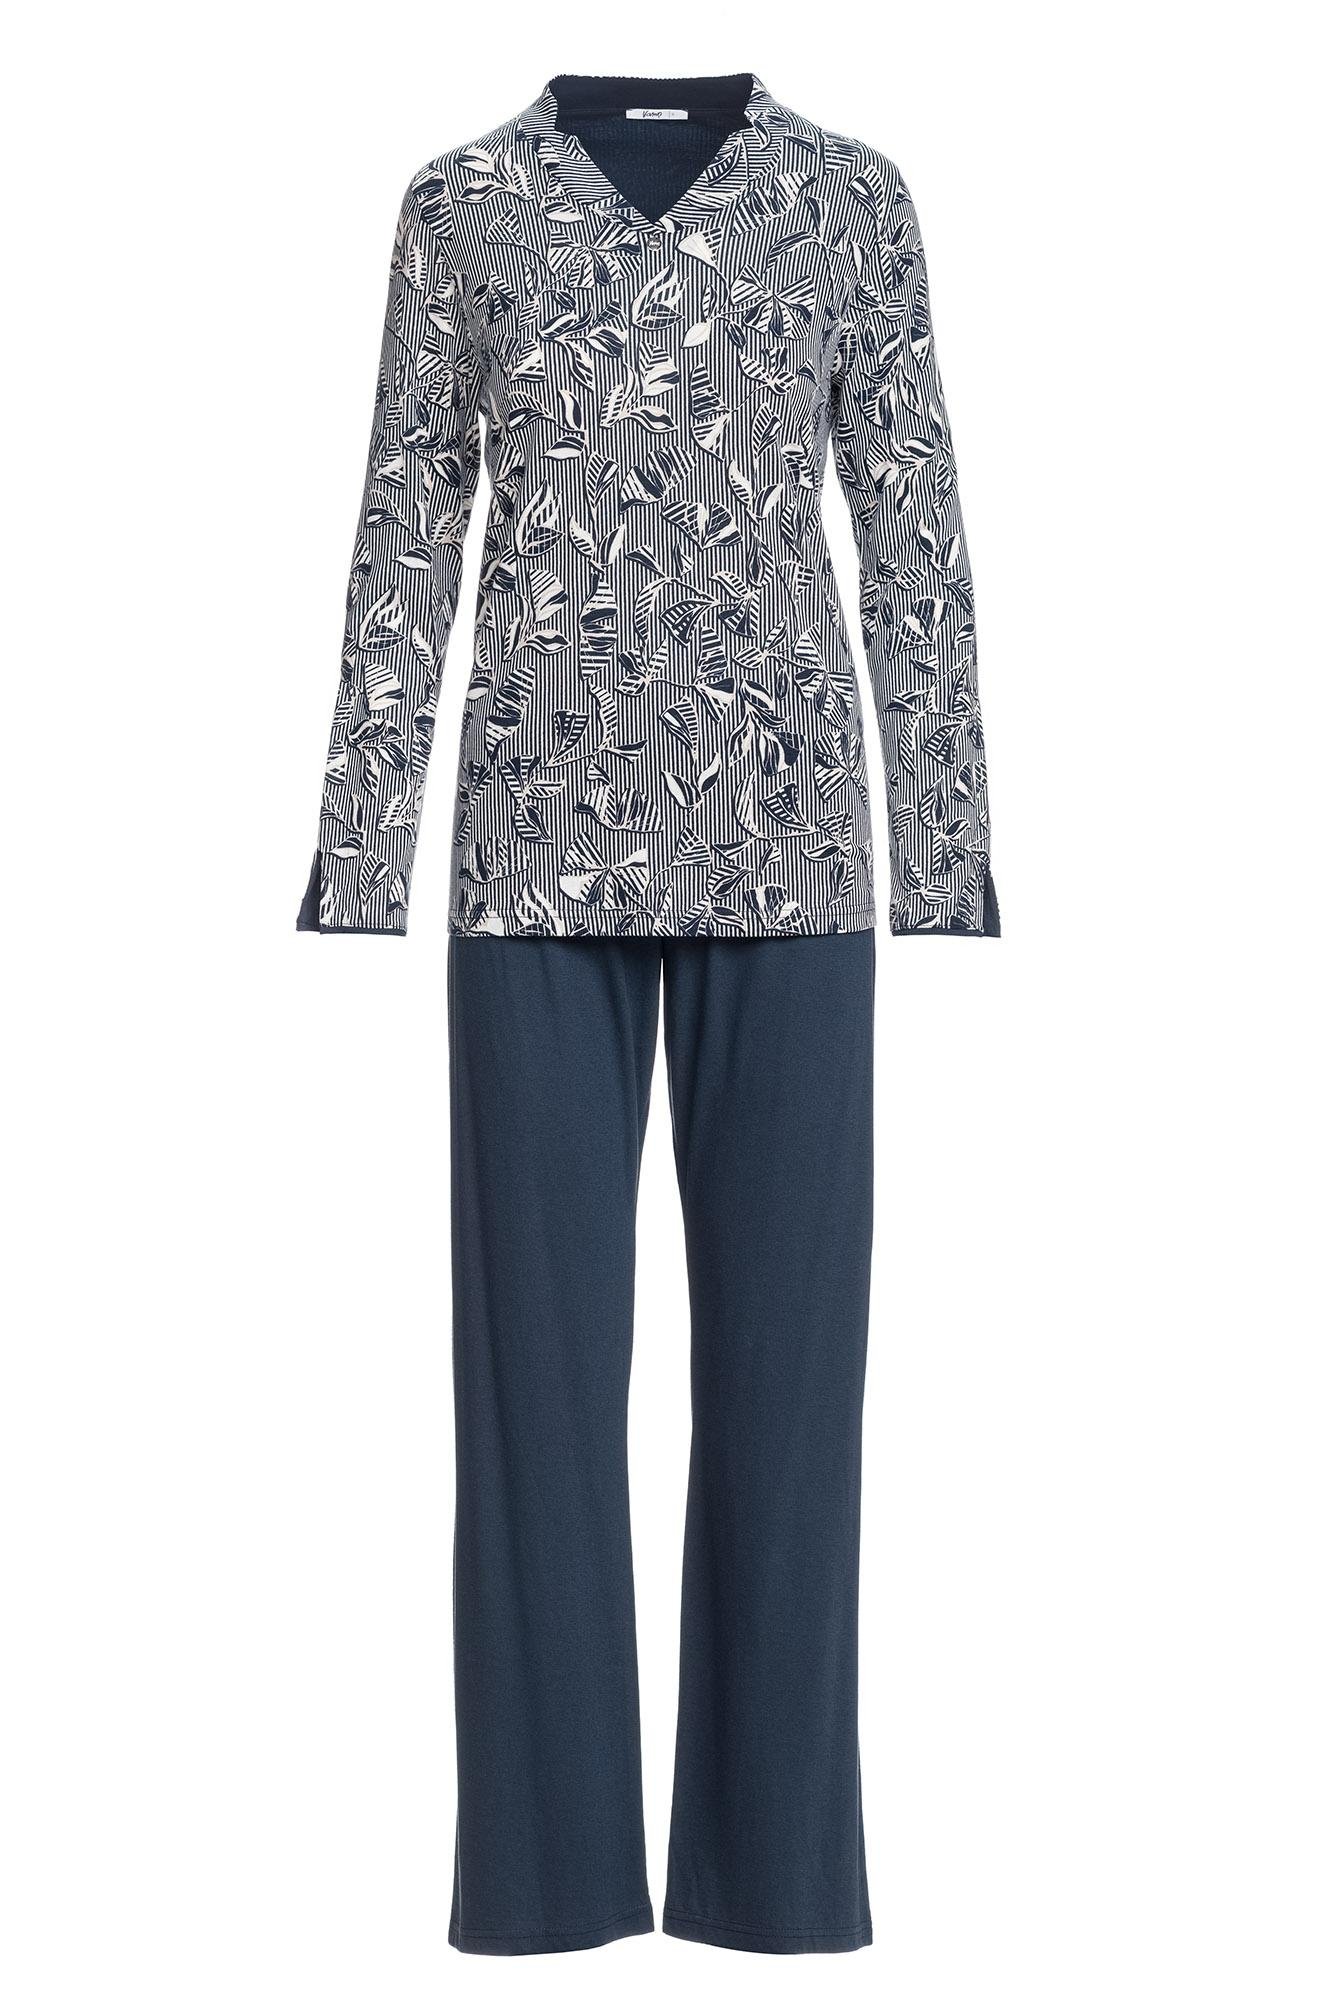 Women's Patterned Pyjamas